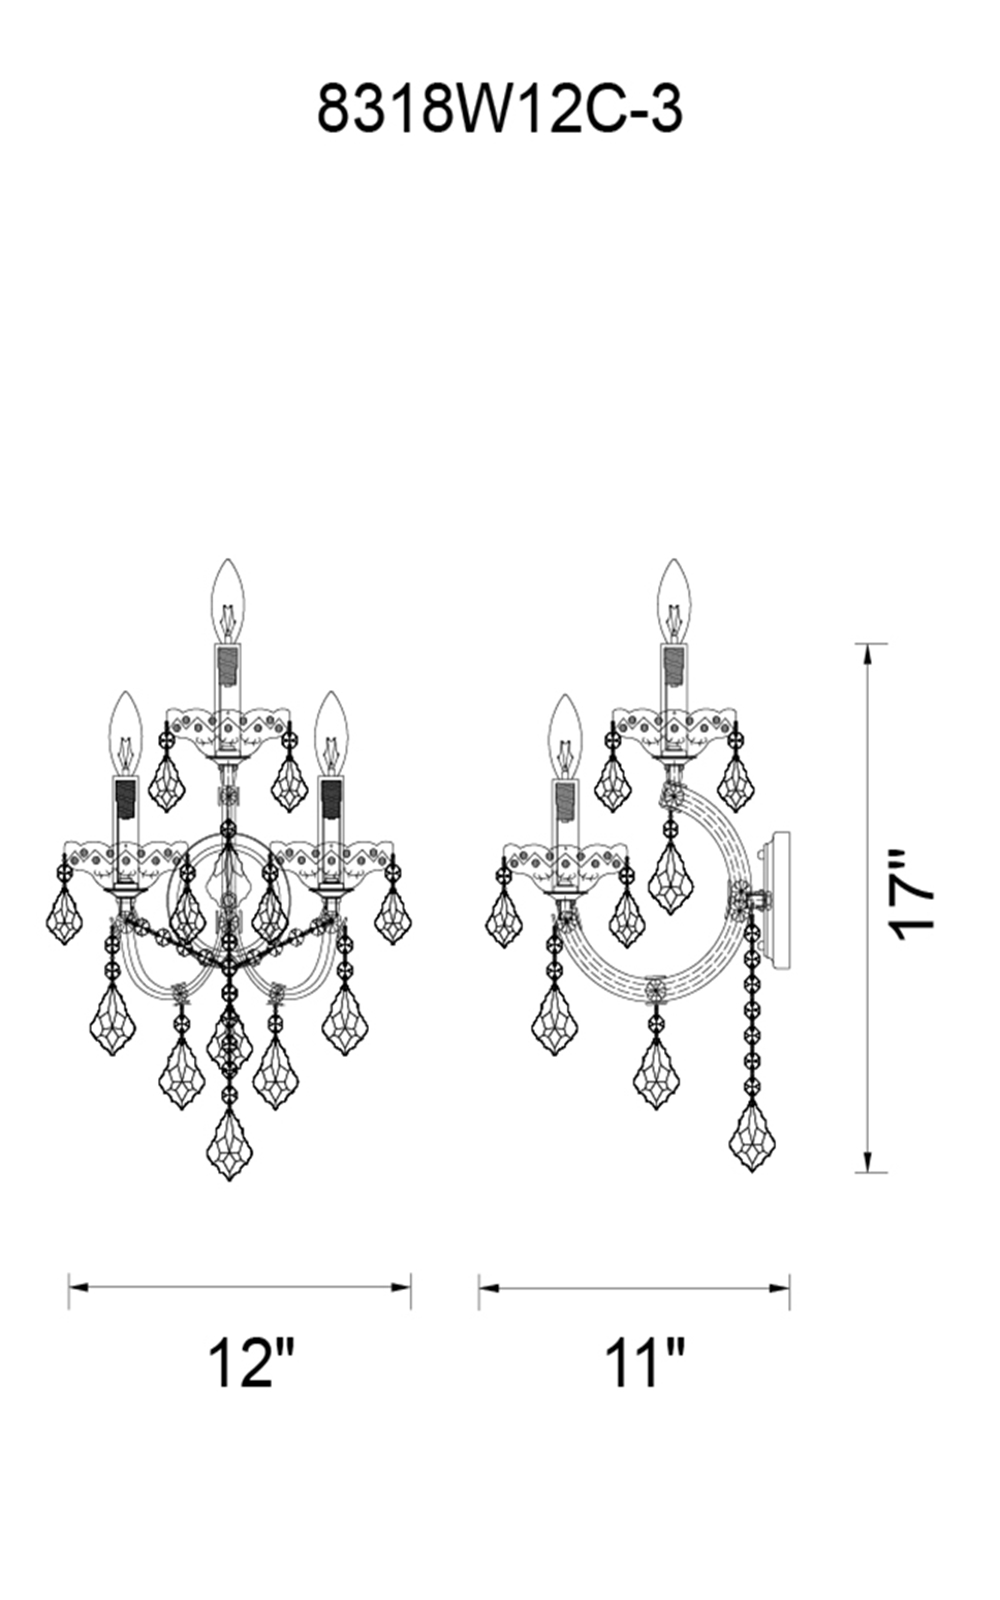 CWI Lighting Maria Theresa 3 Light Wall Sconce With Gold Finish Model: 8318W12G-3 Line Drawing